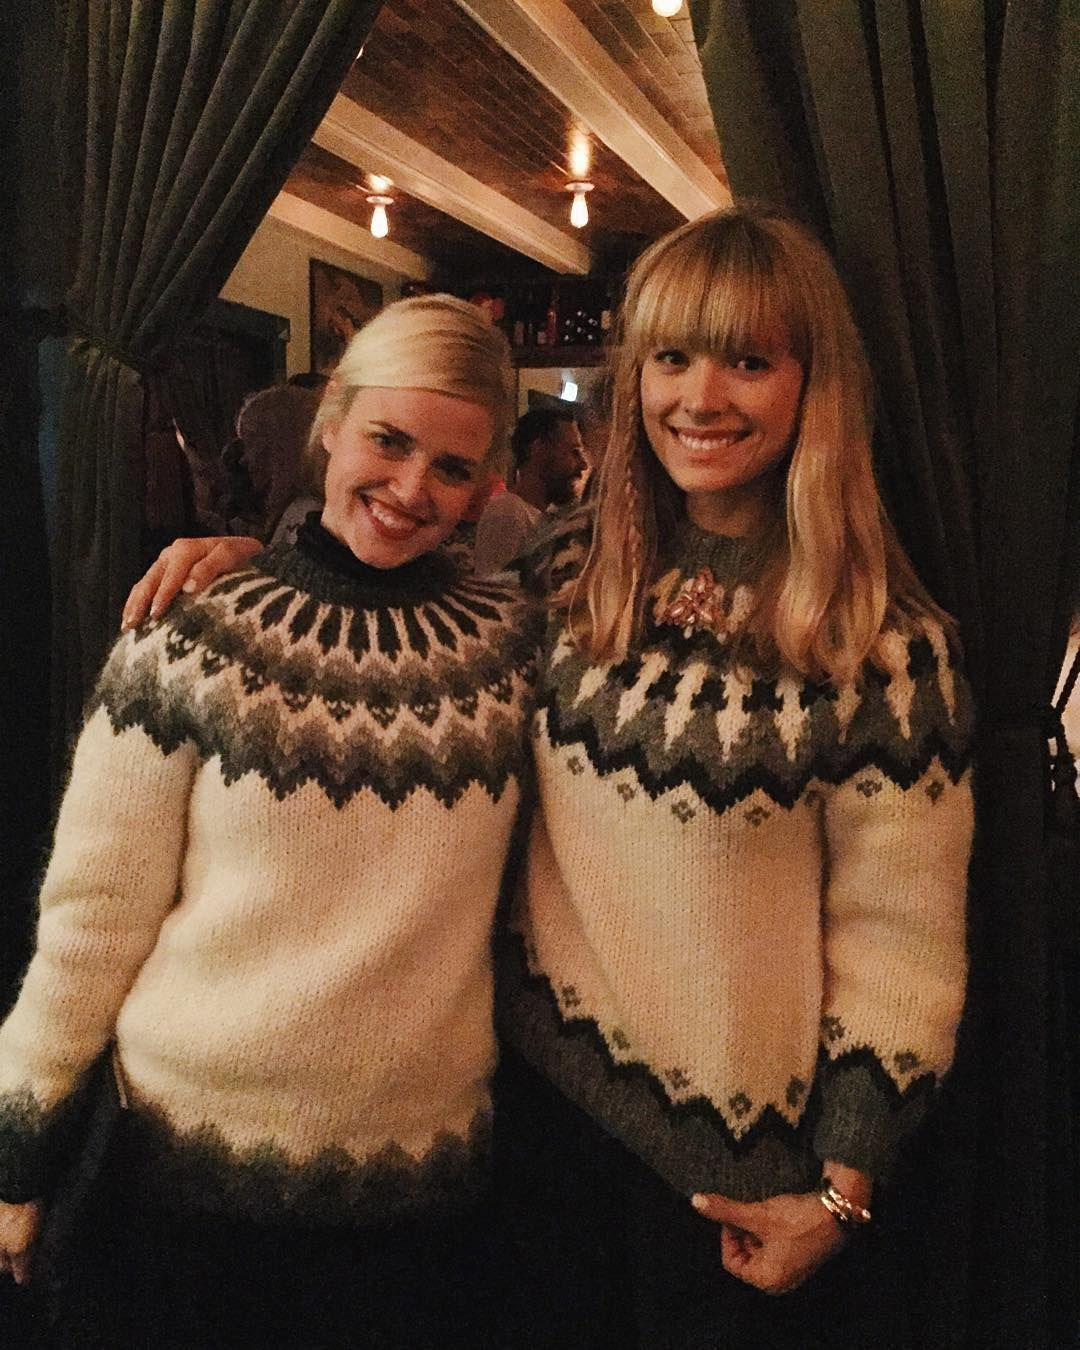 Serious jumper situation. Icelandic sweater pizza party - with fellow Vestur Íslendingar @brittbarkwell